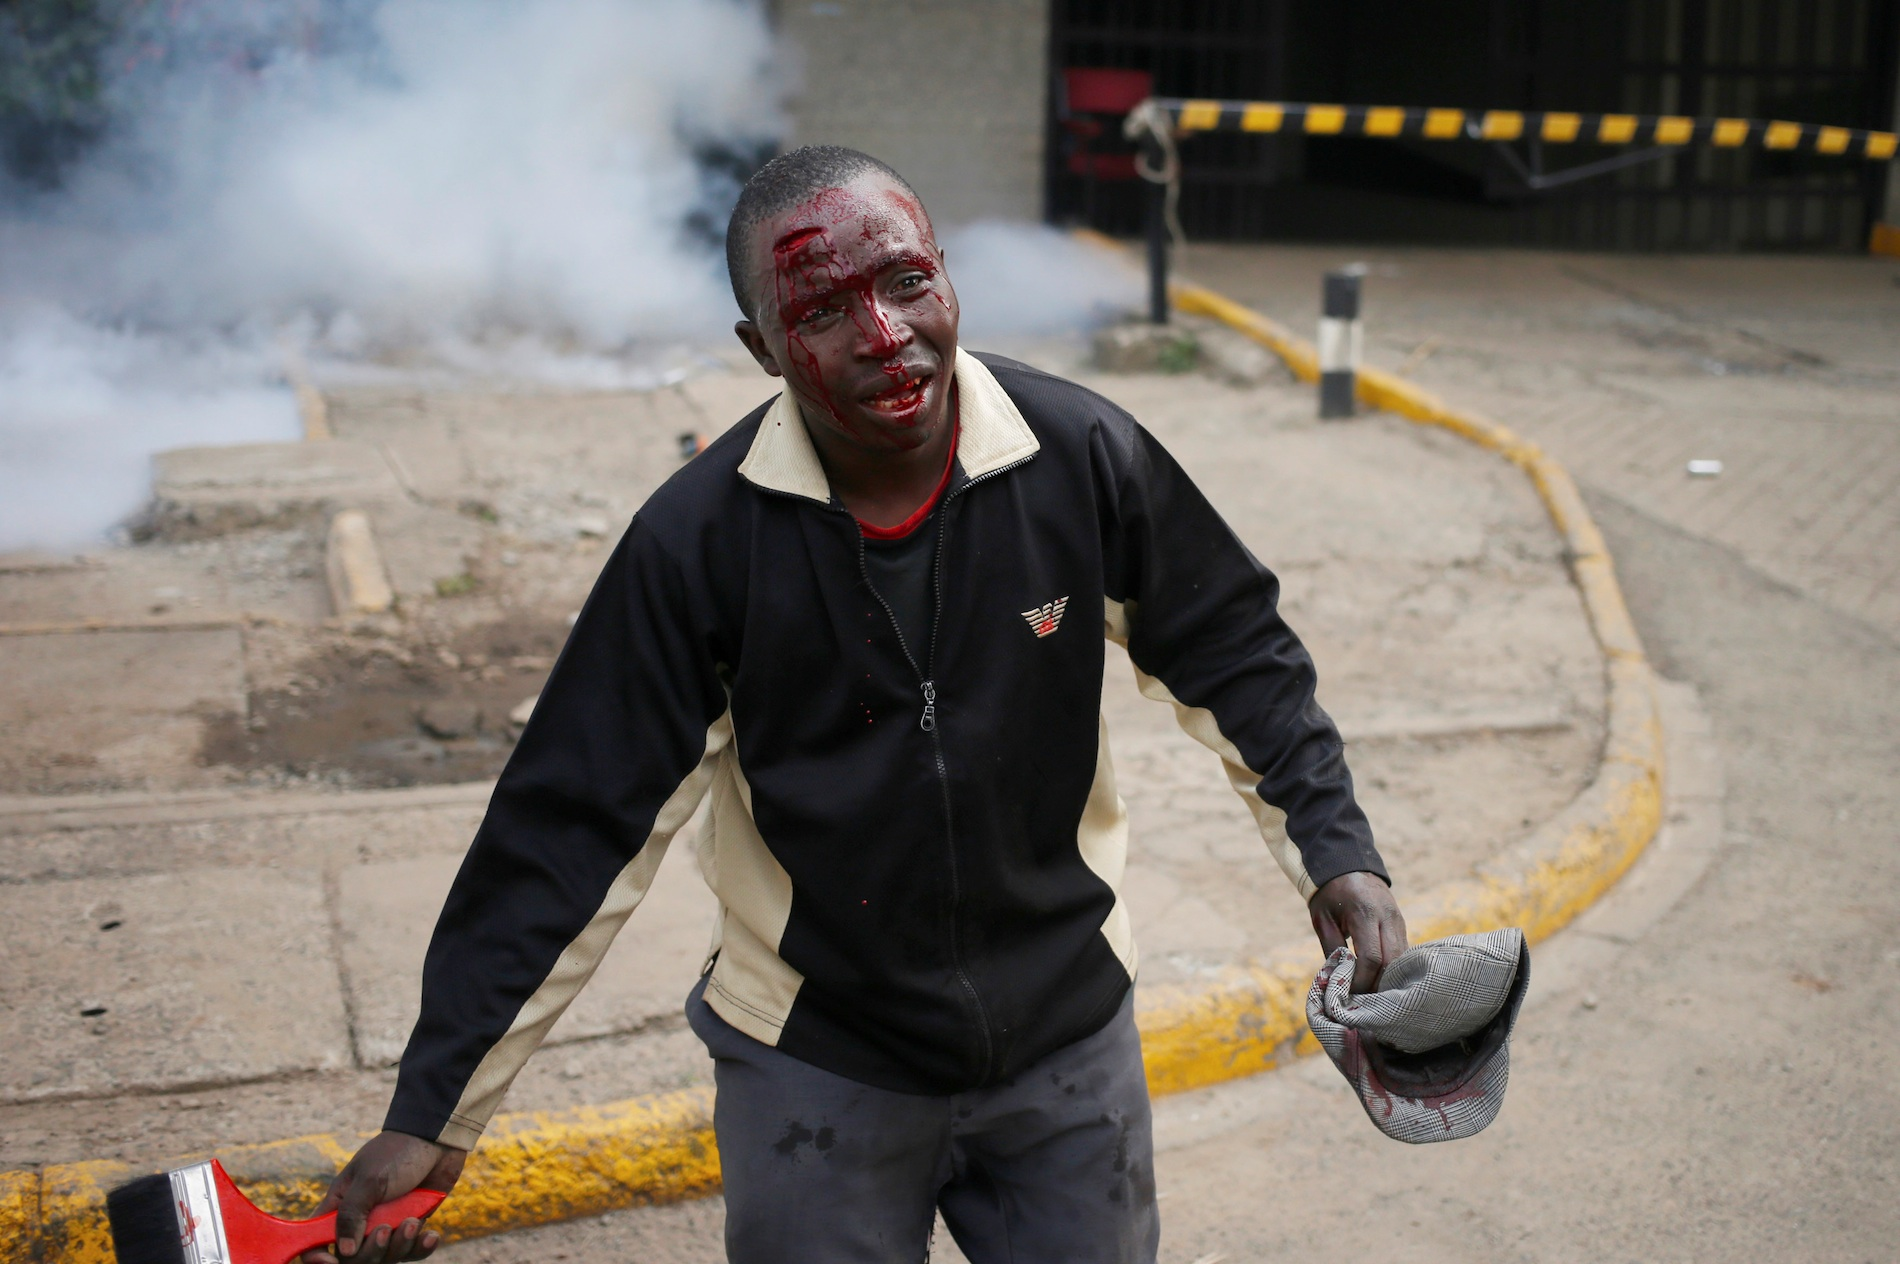 A protester bleeds after clashes with police in Nairobi.